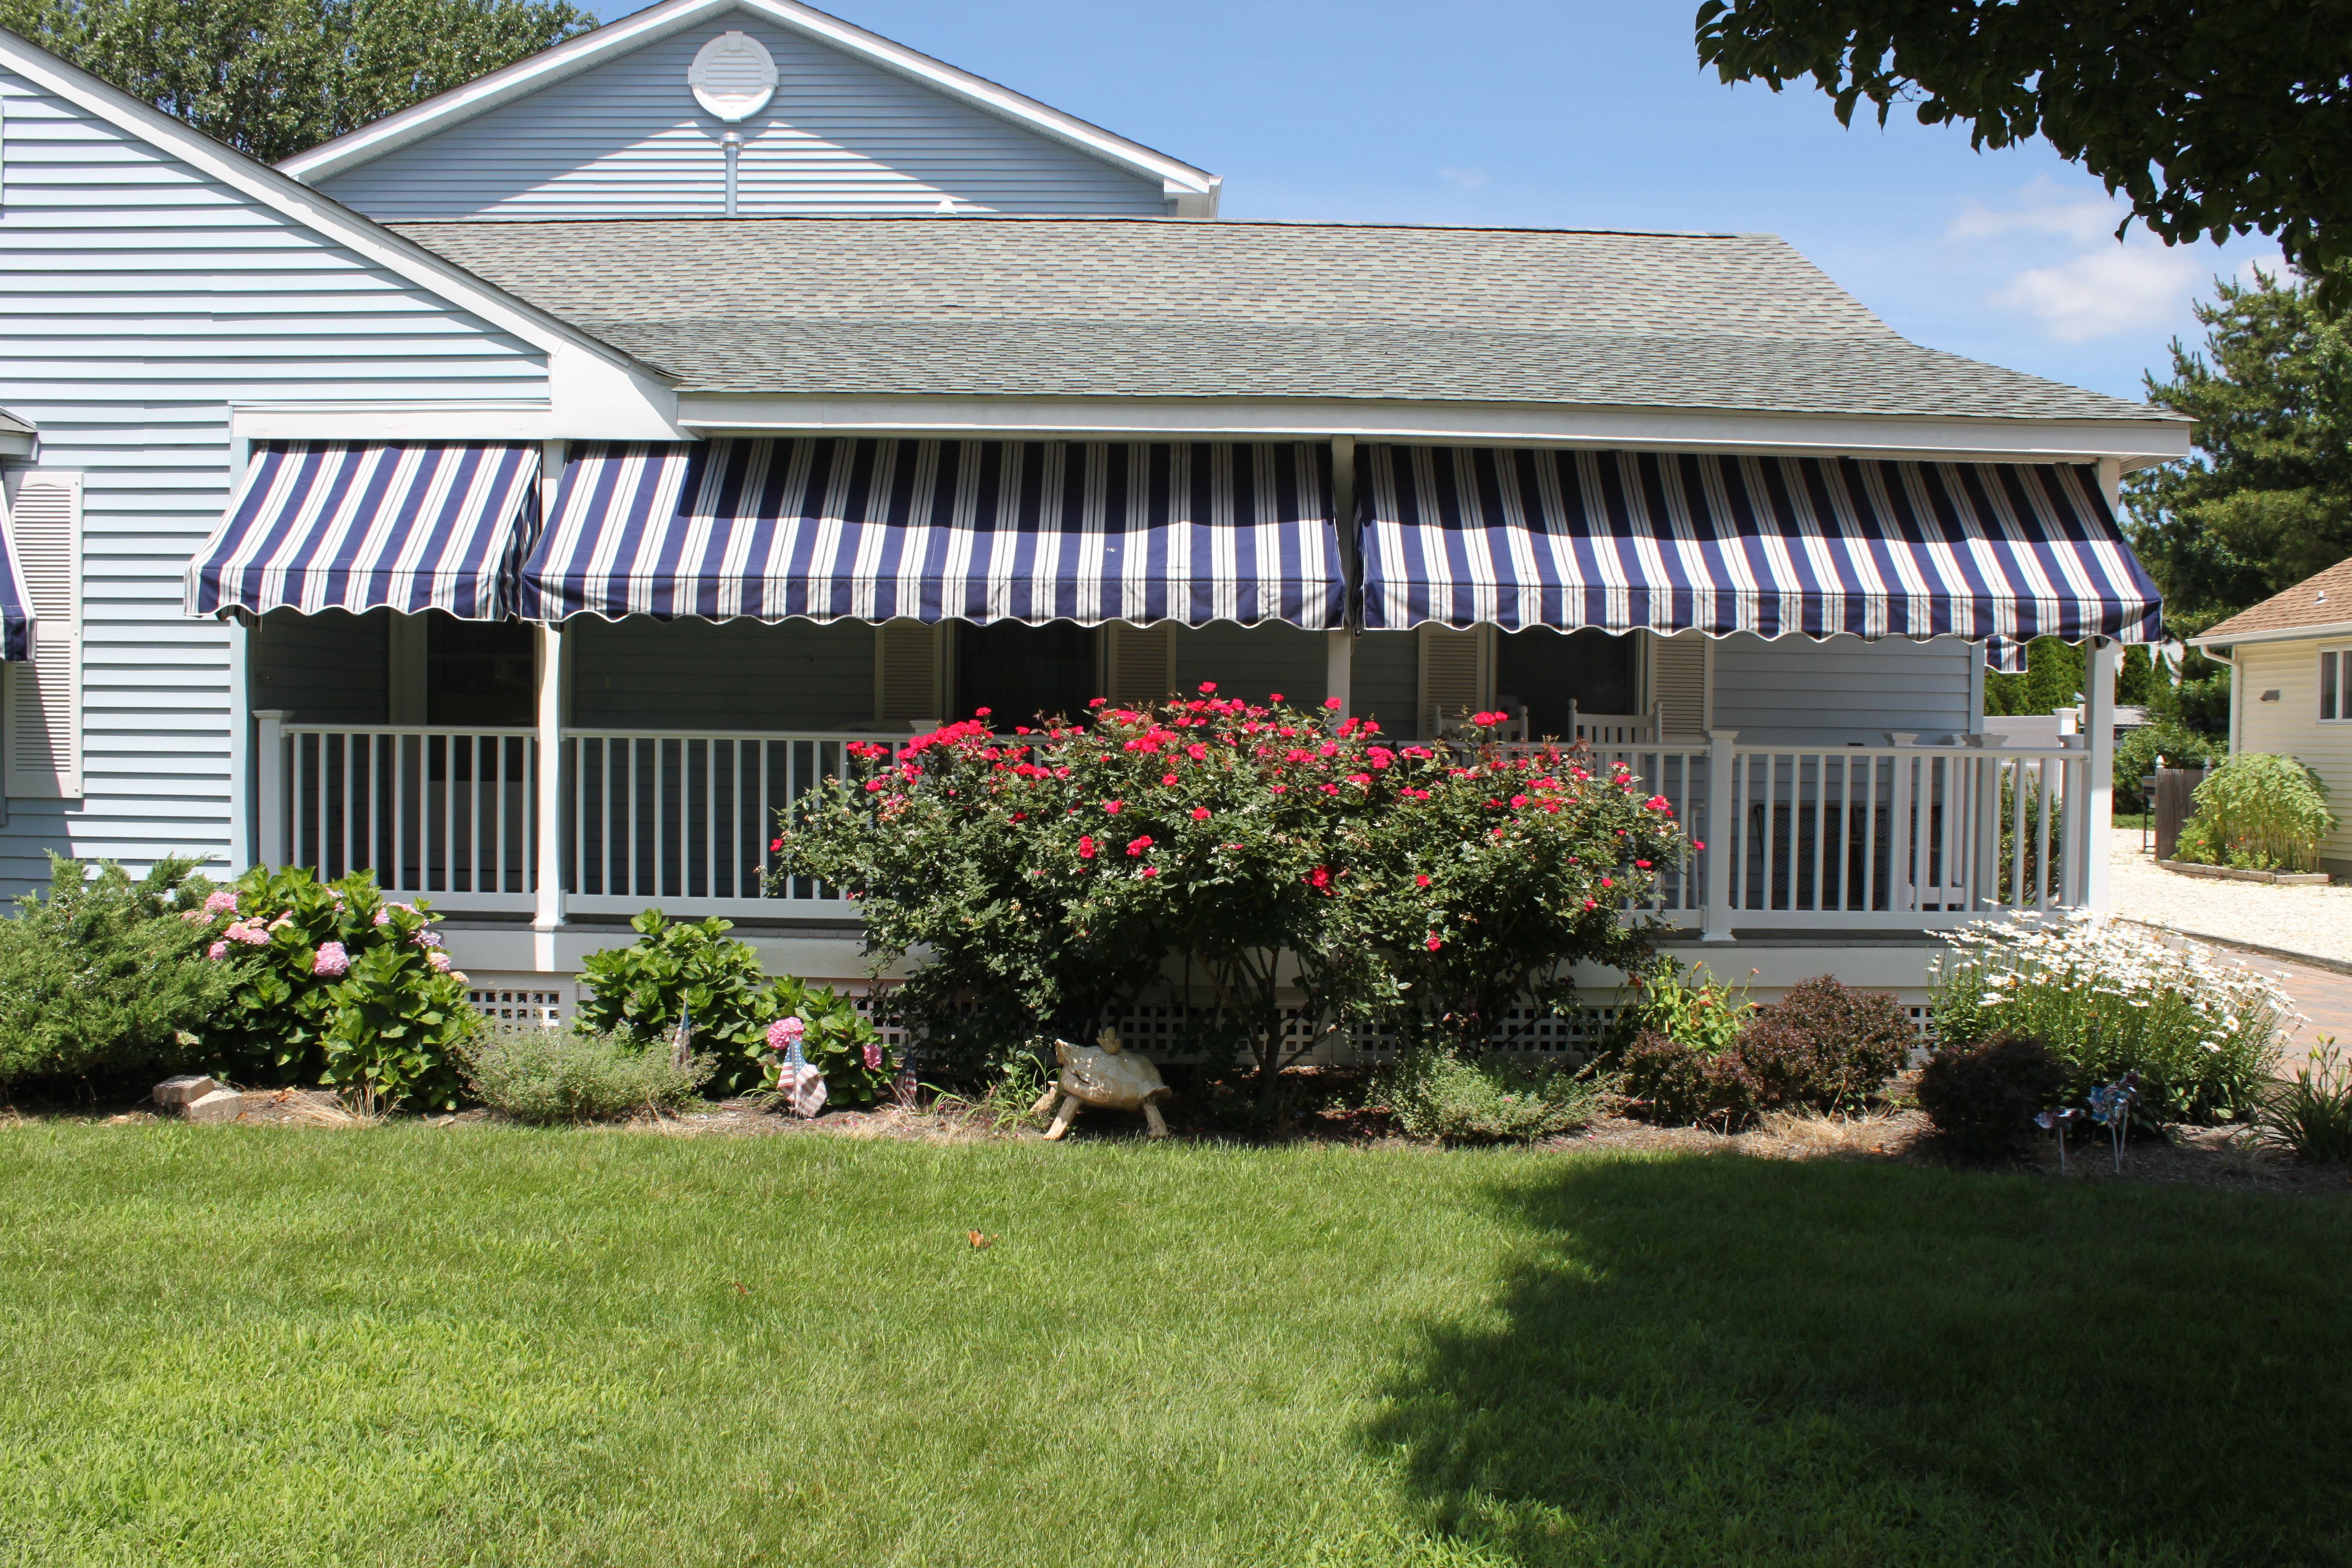 Awnings And Canopies By Bill S Canvas Shop Canopy Outdoor Decor Awning